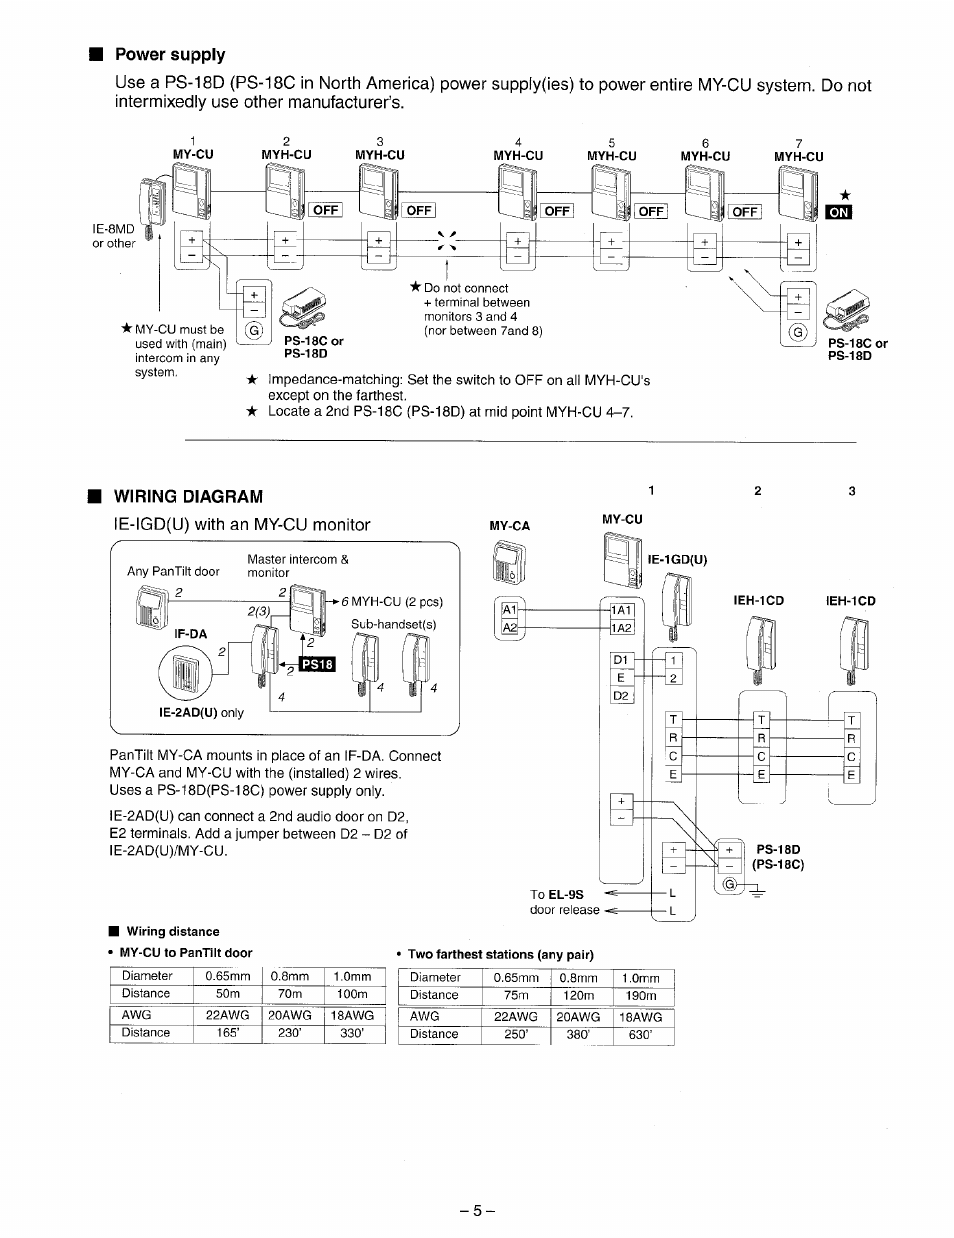 power supply wiring diagram aiphone my cu user manual. Black Bedroom Furniture Sets. Home Design Ideas